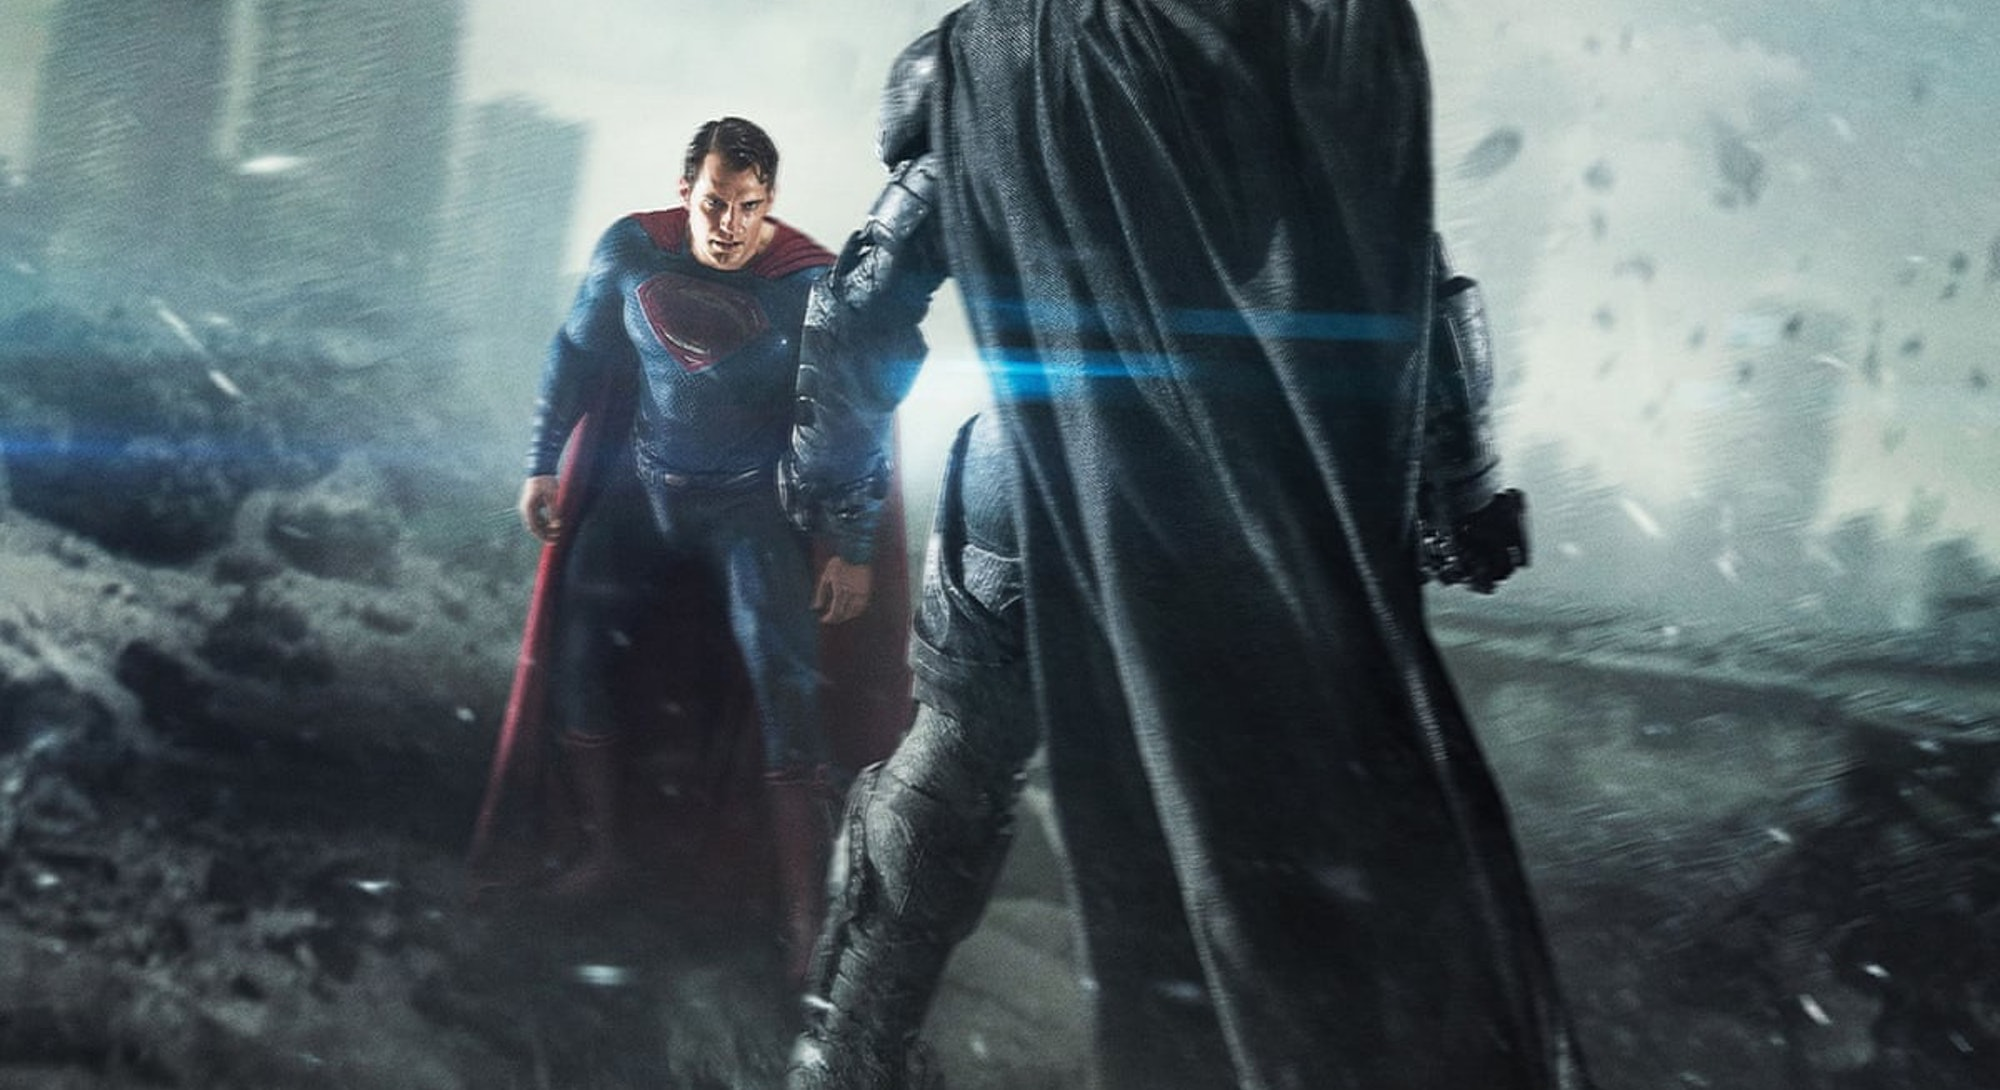 batman and superman facing each other before fight from dawn of justice